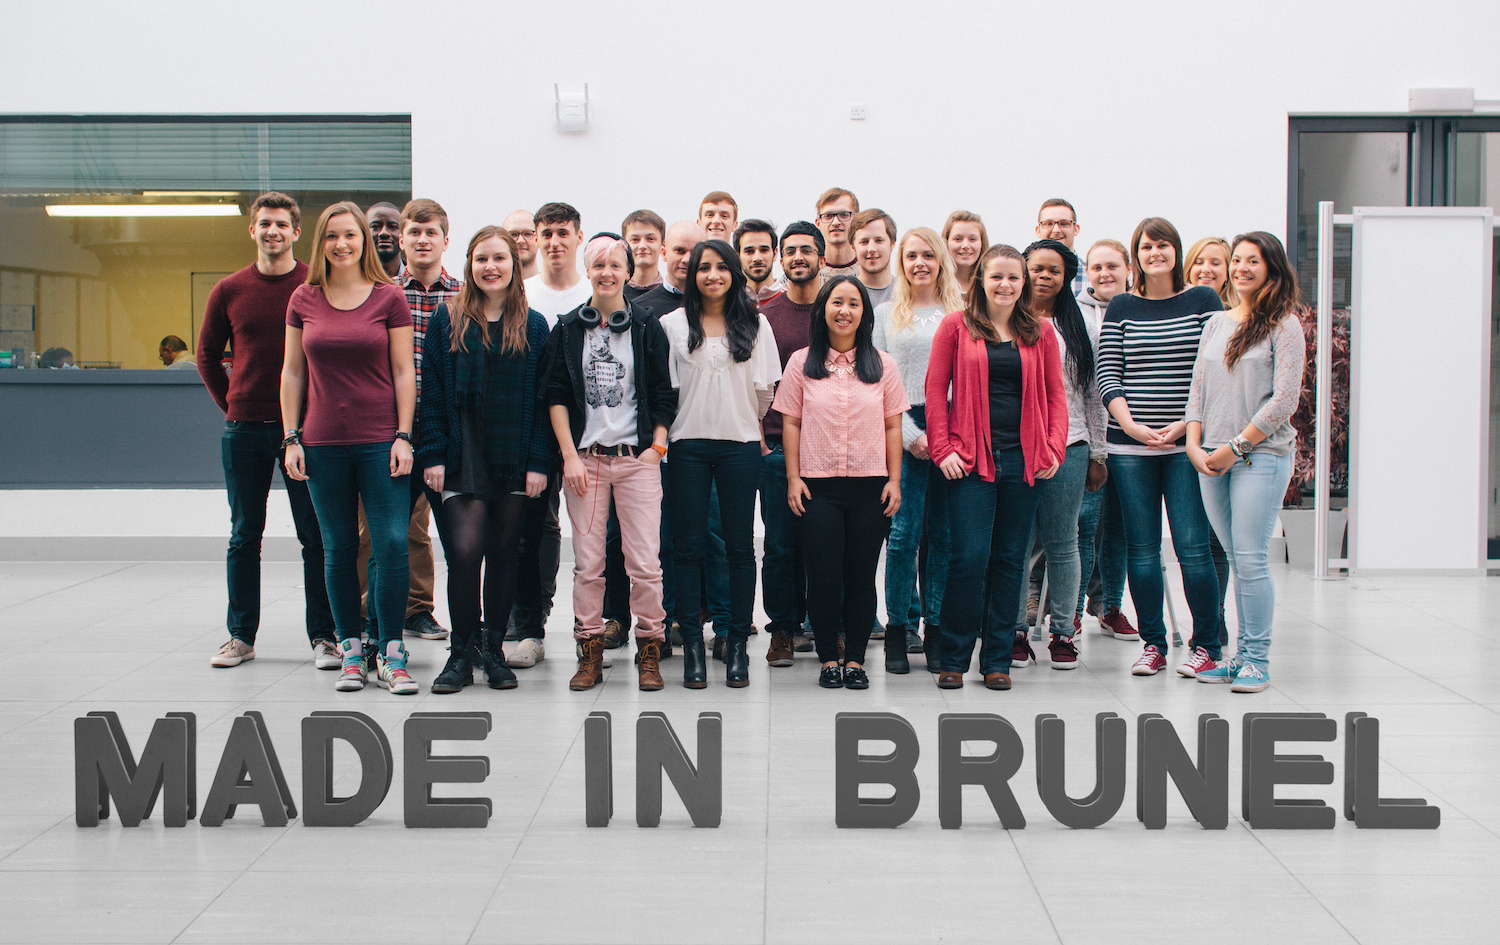 The final year Made in Brunel team